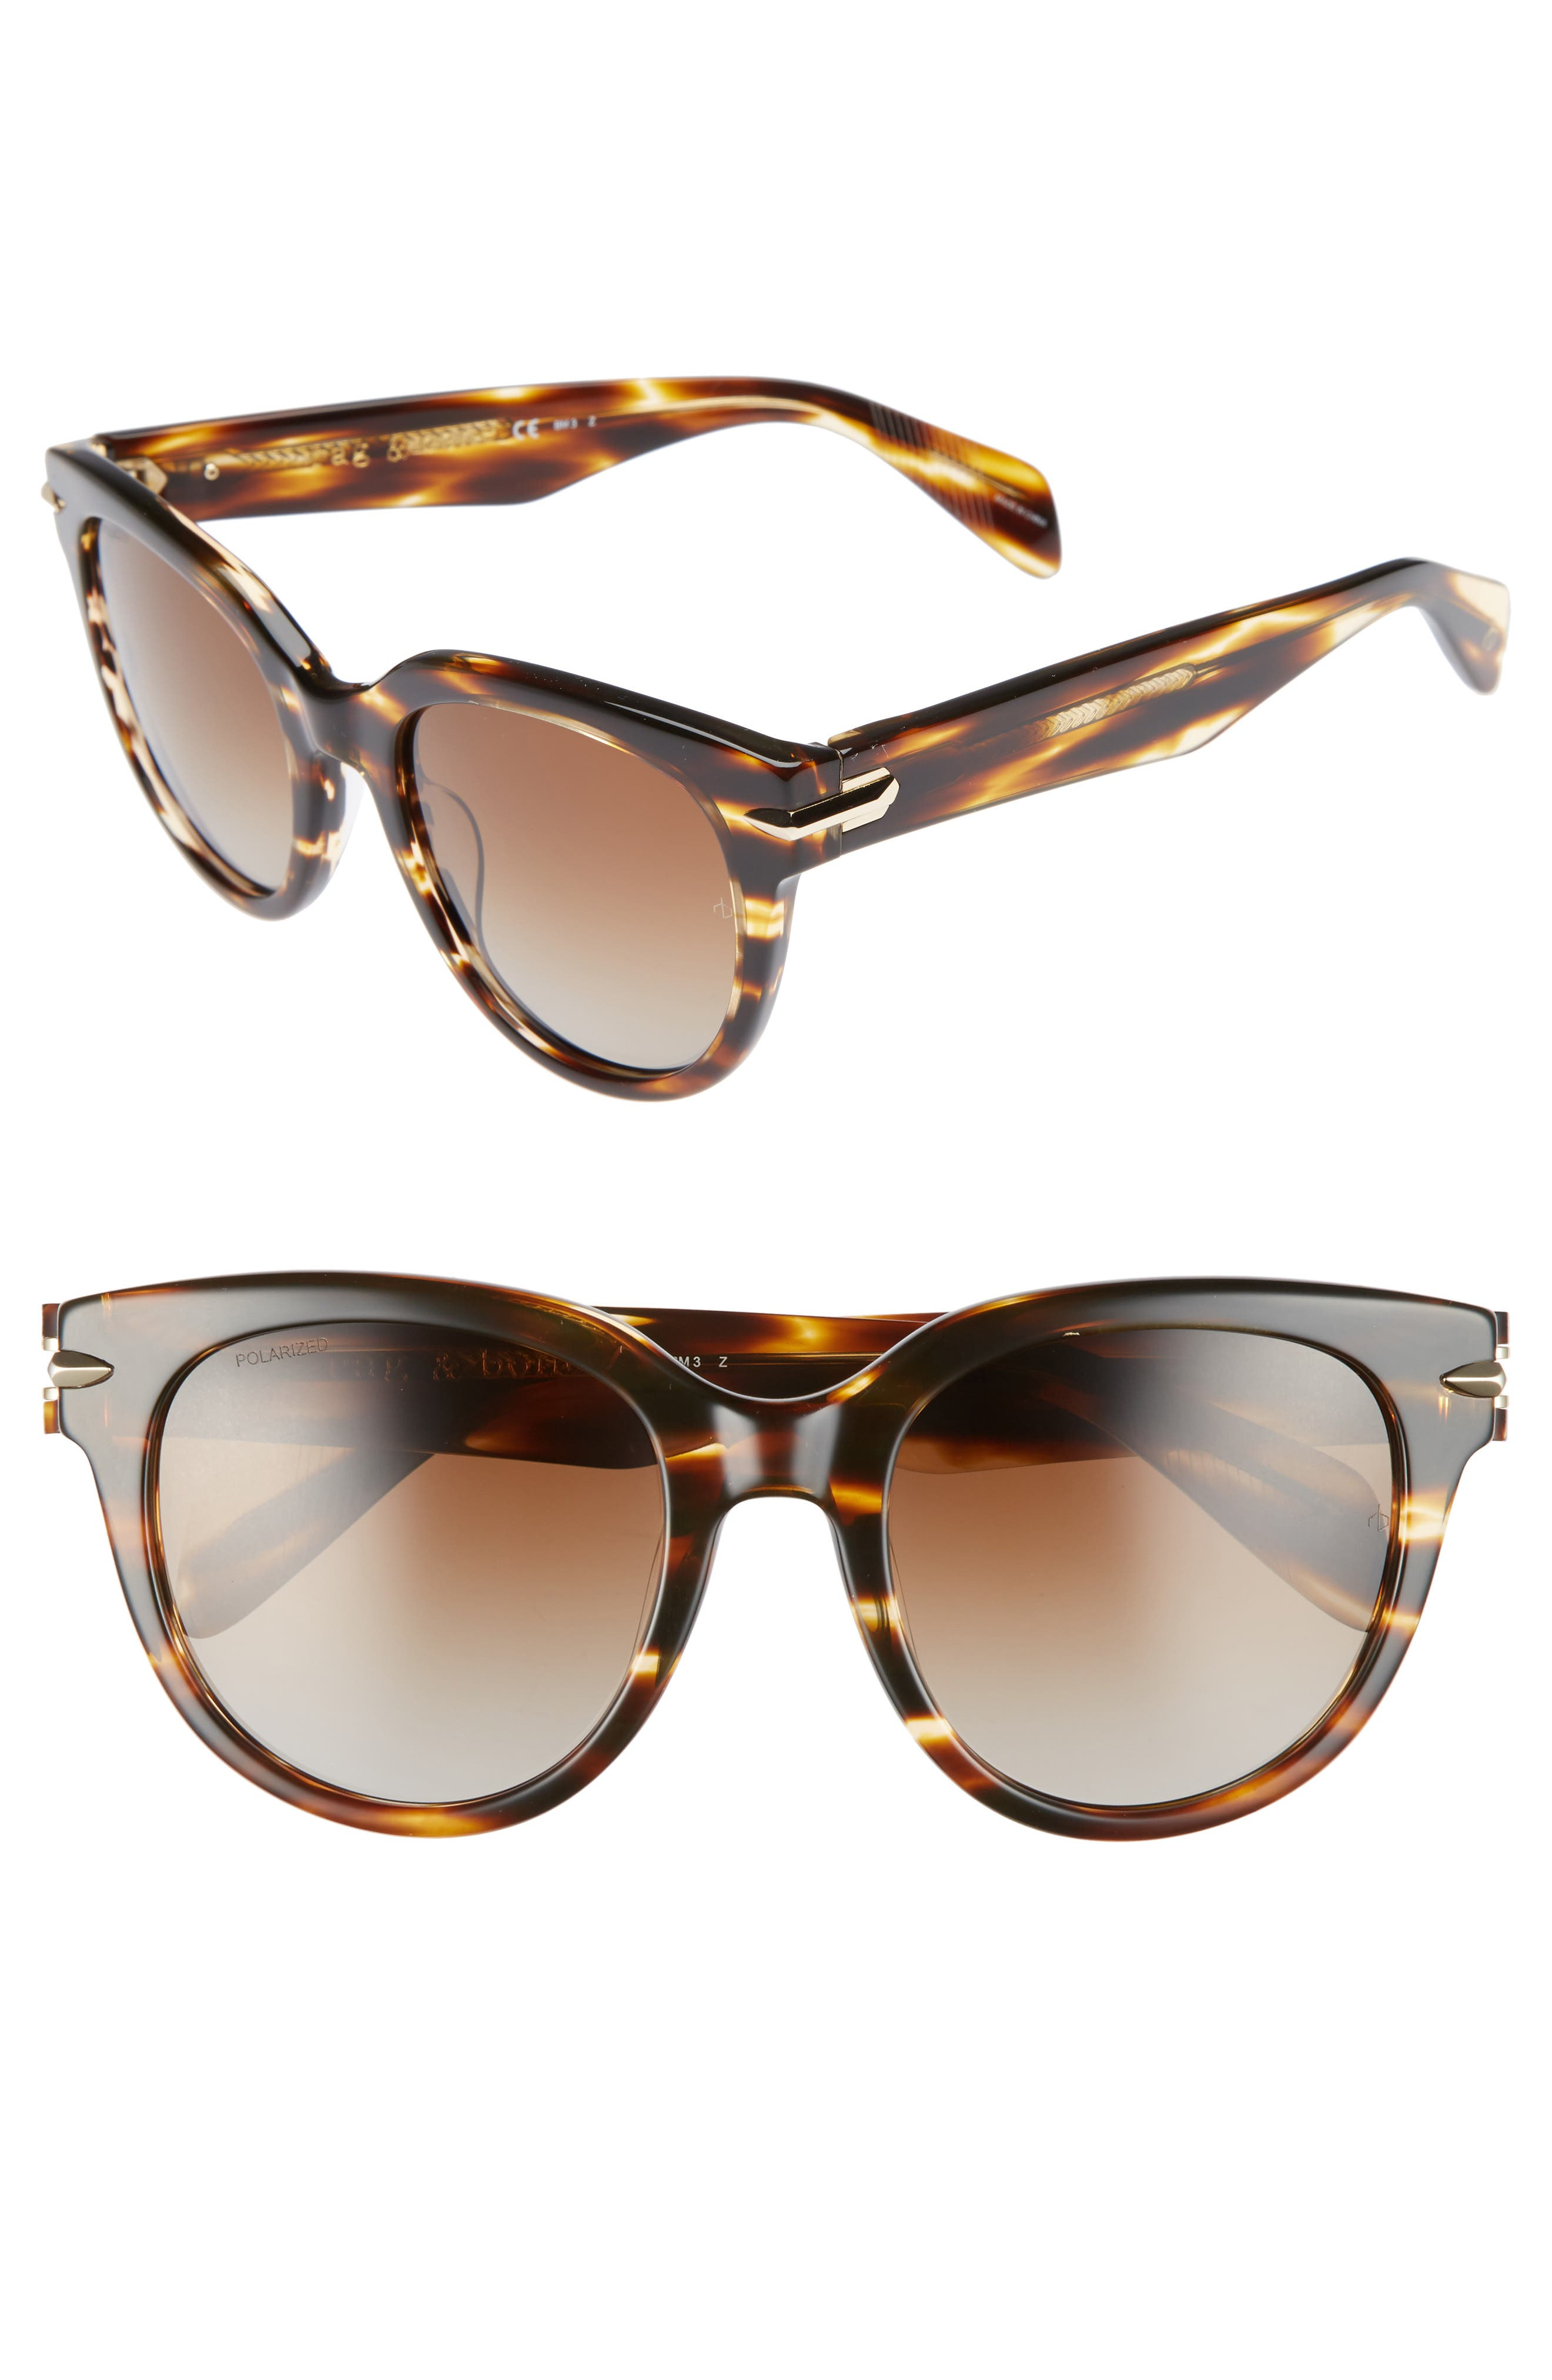 54mm Cat Eye Sunglasses,                             Main thumbnail 1, color,                             Dark Havana